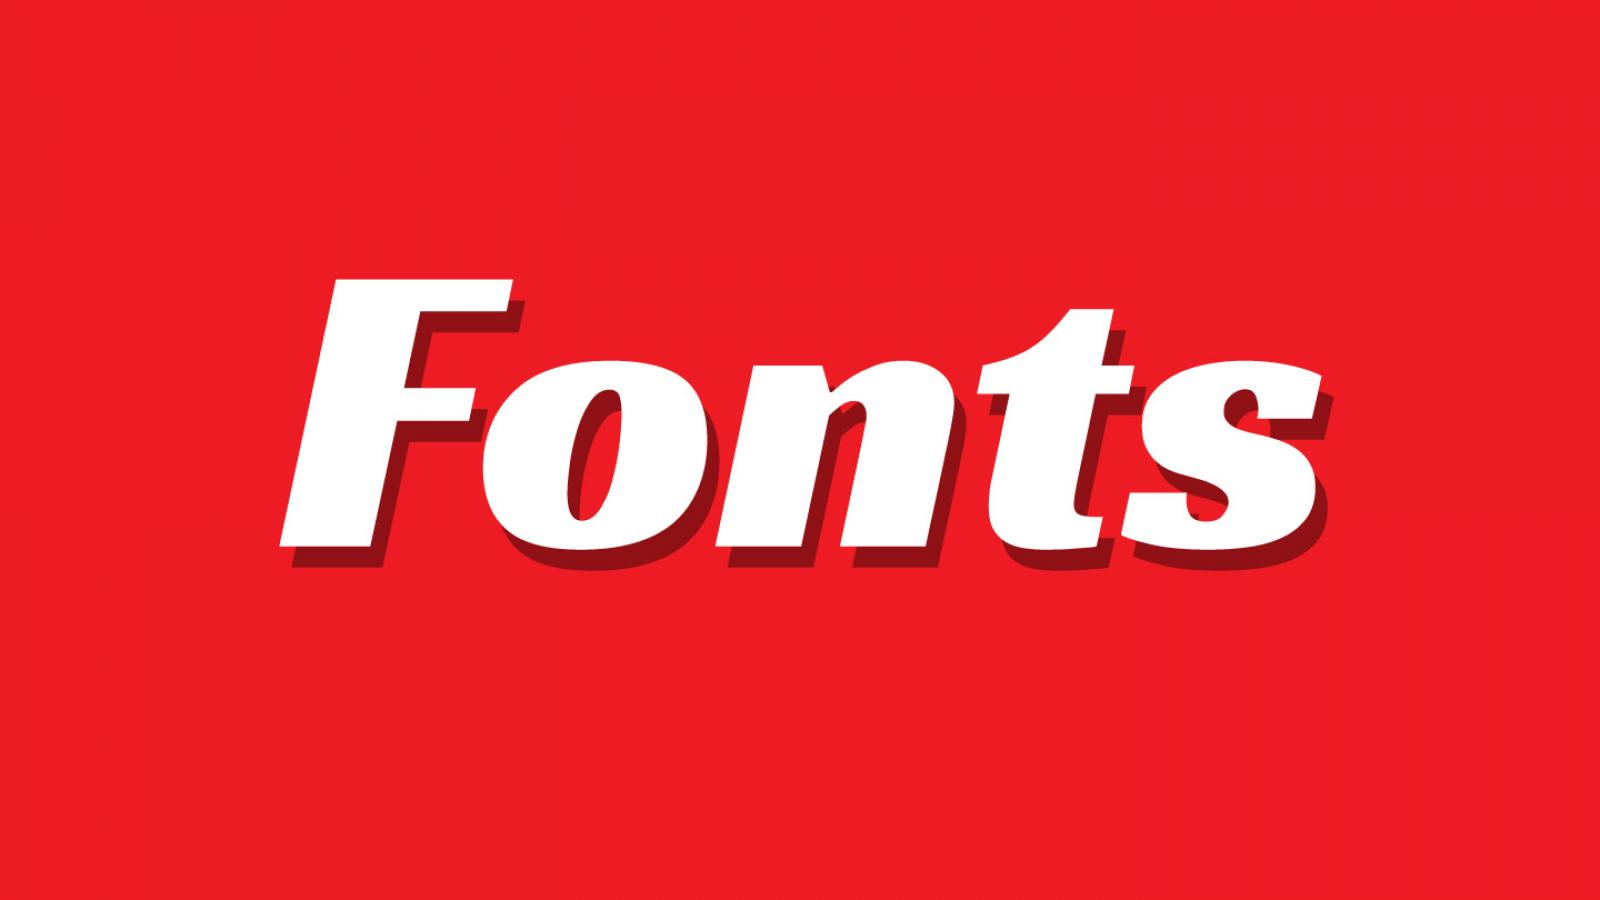 Friday Fresh Free Fonts - Racing Sans, Chelsea, Vincent